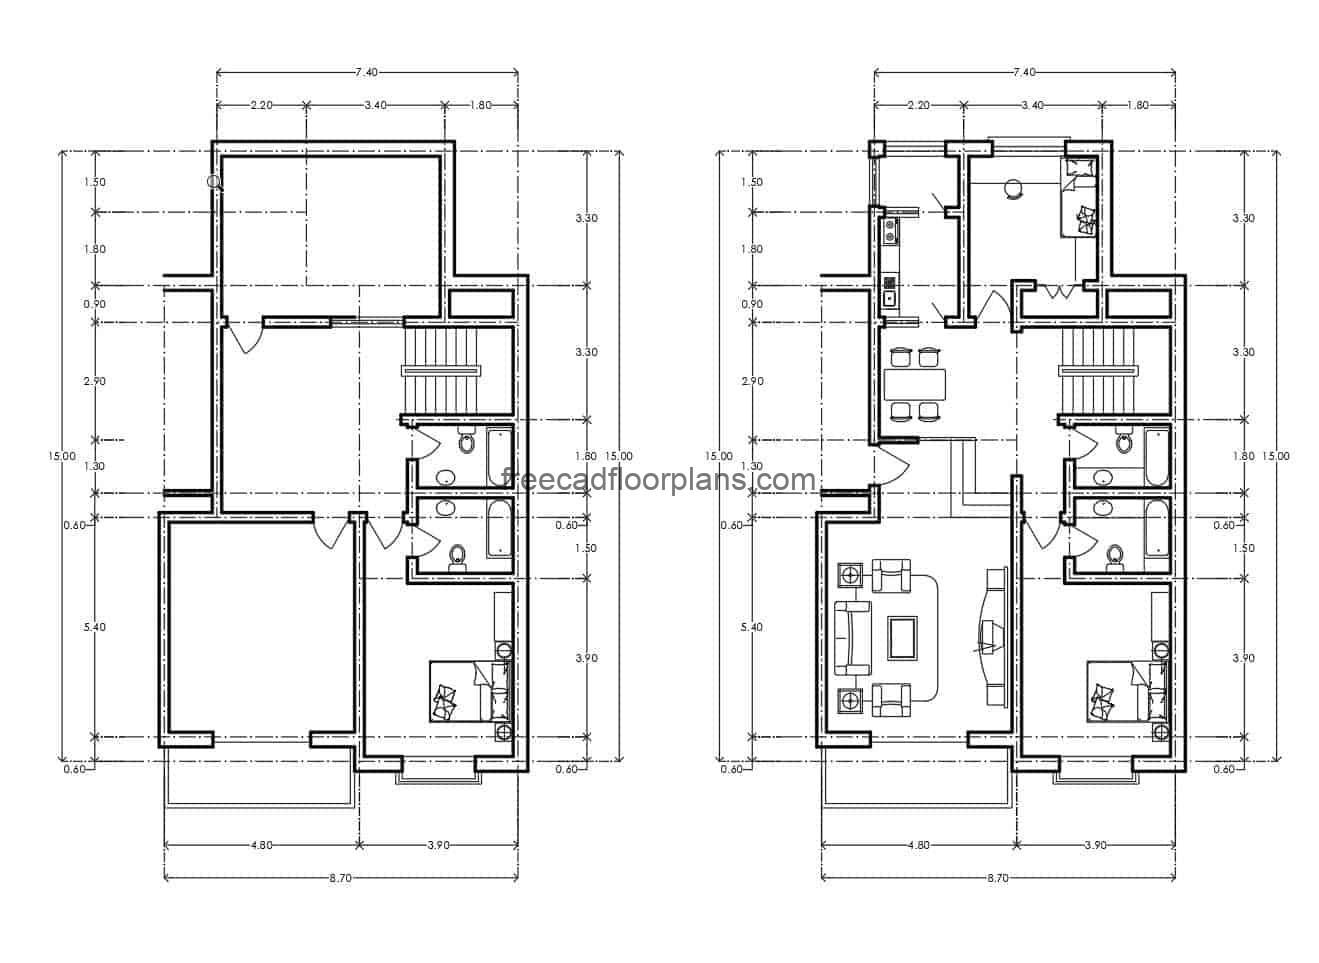 Architectural and dimensional plan of a small residential building with two bedrooms, two bathrooms, living room, kitchen, dining room and small laundry area, DWG file for download